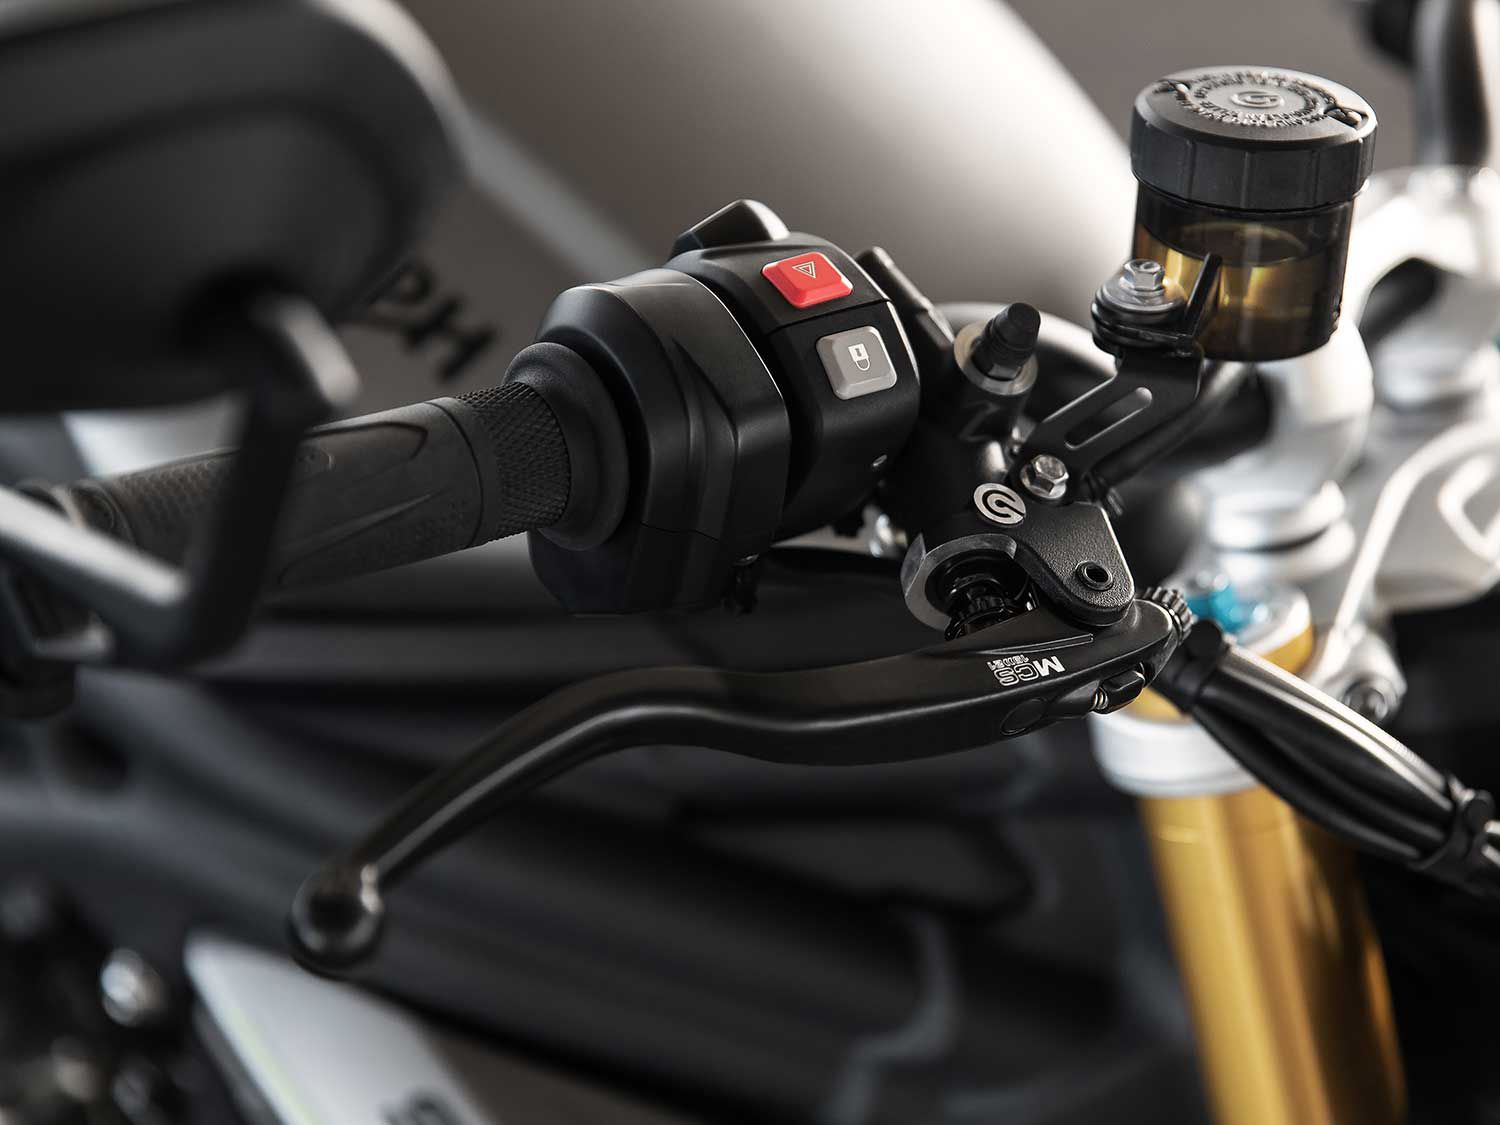 High-quality components down to the Brembo master cylinder and lever.